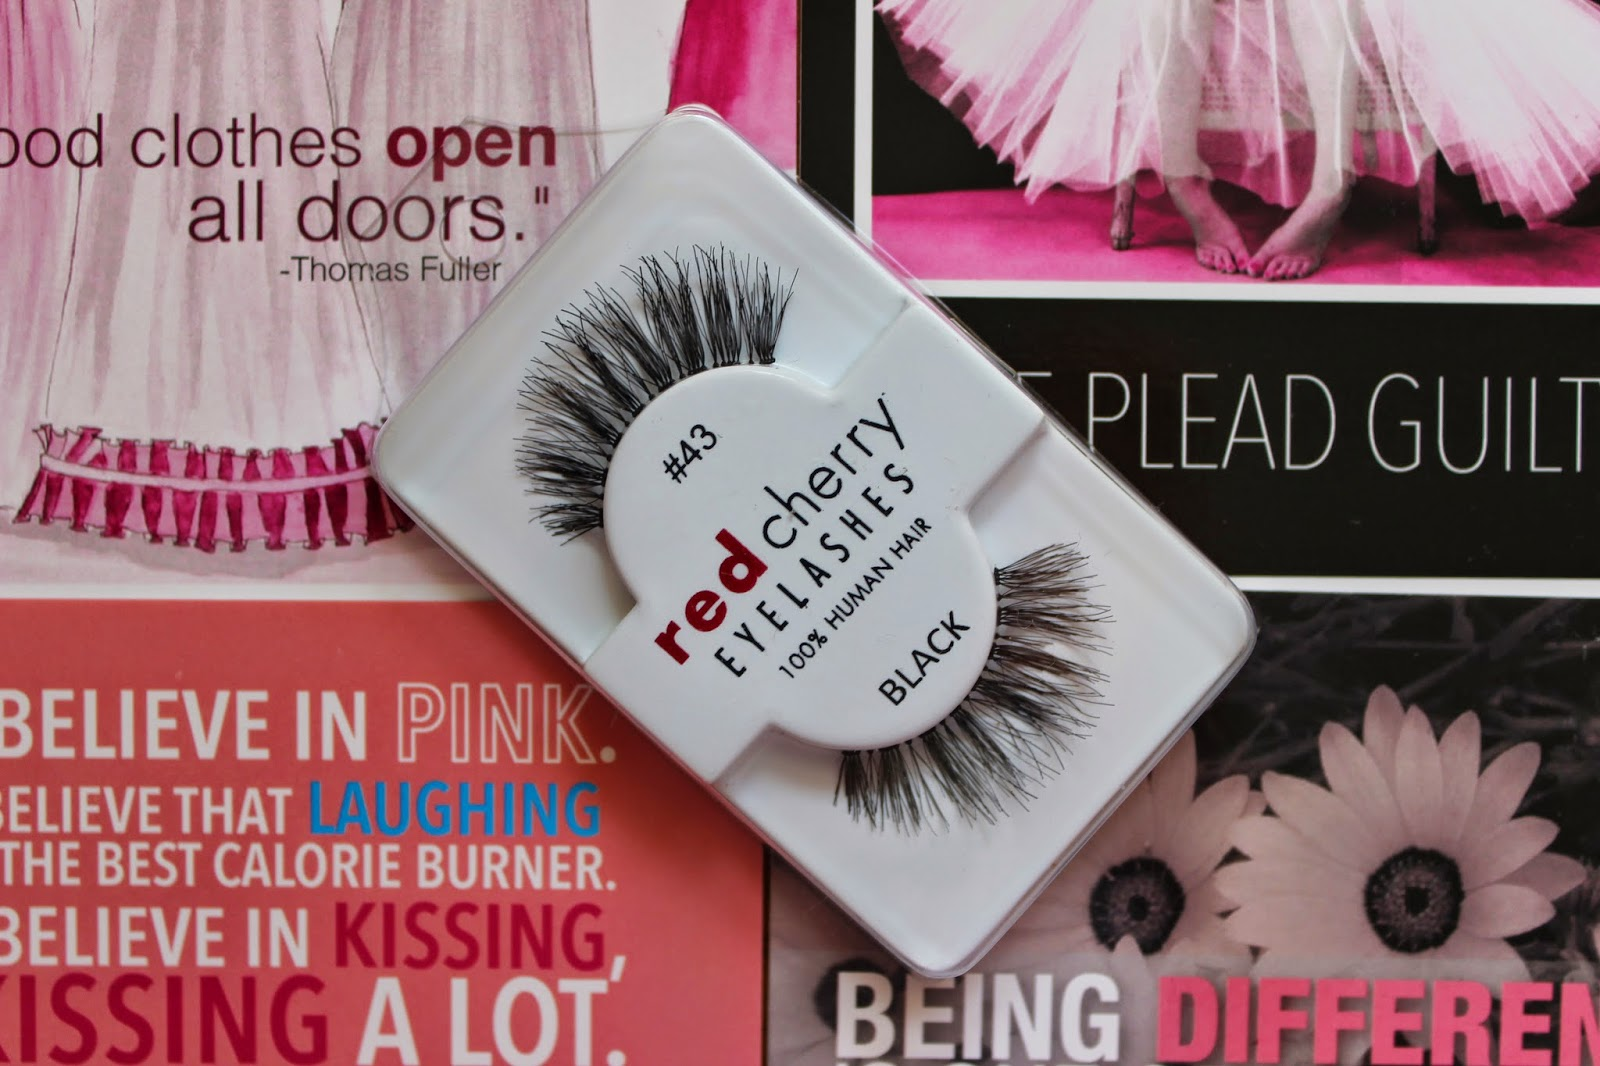 88803cb2959 ... lashes, I discovered Red Cherry. I found a seller on Ebay selling 6  pairs for only $18 (including shipping), HERE so I decided to give it ago.